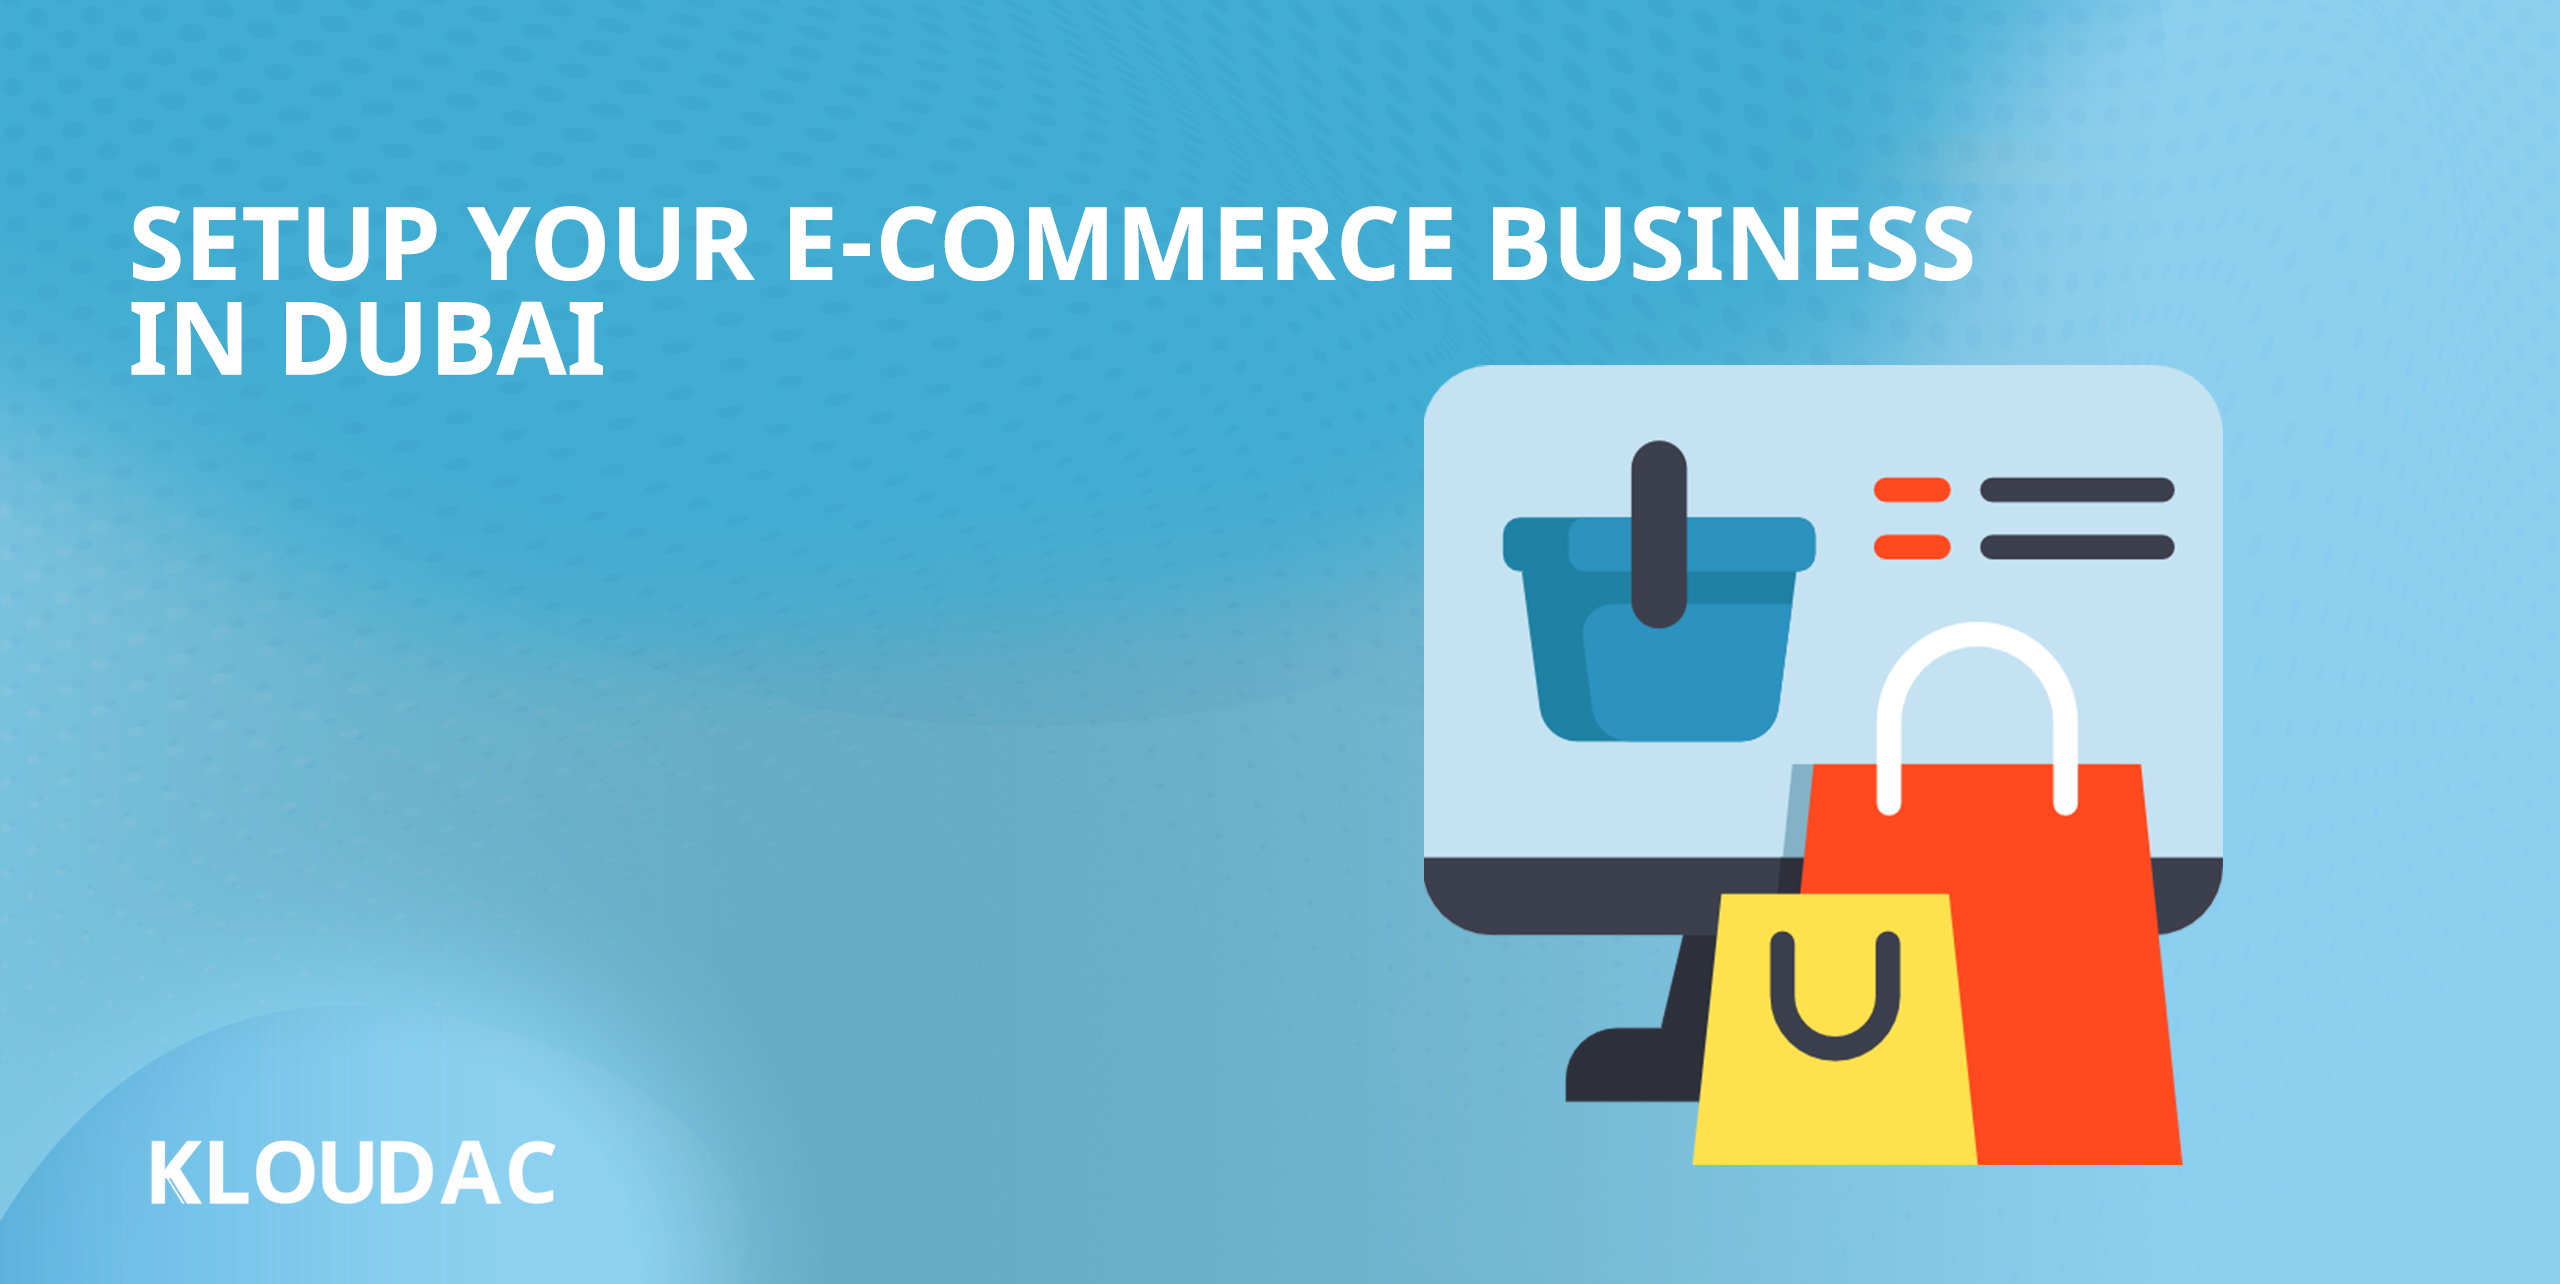 Setup your Ecommerce business with Kloudac